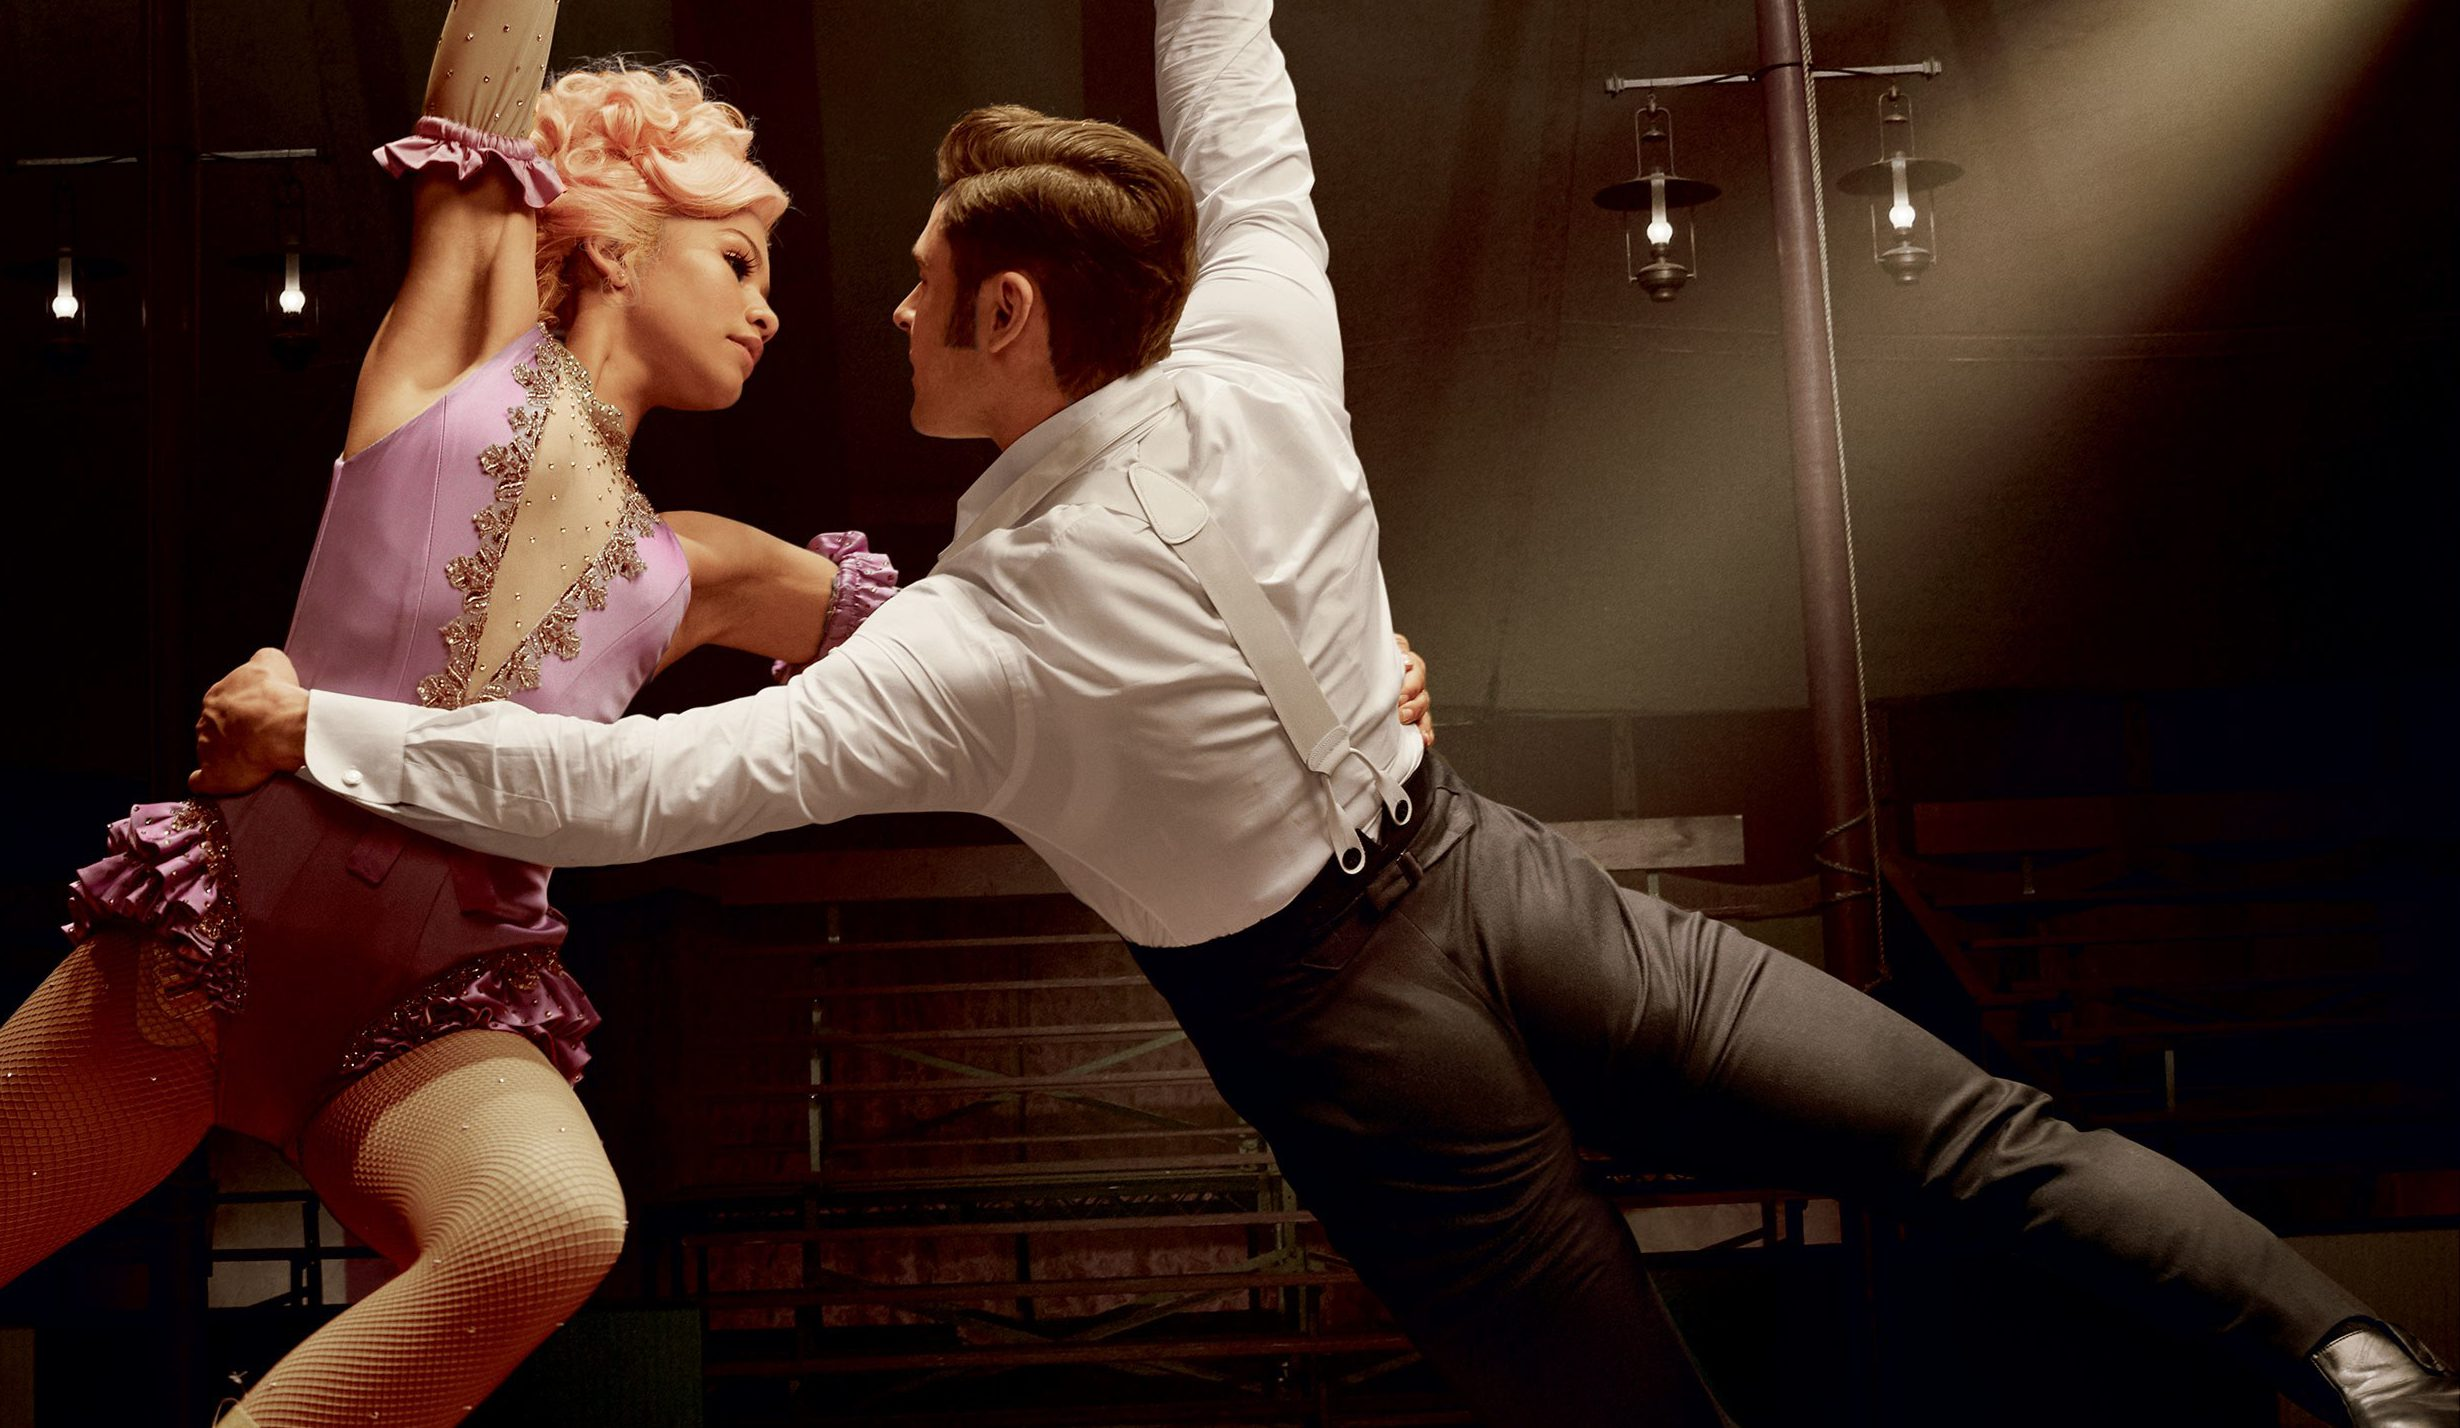 Zendaya and Zac Efron in  The Greatest Showman